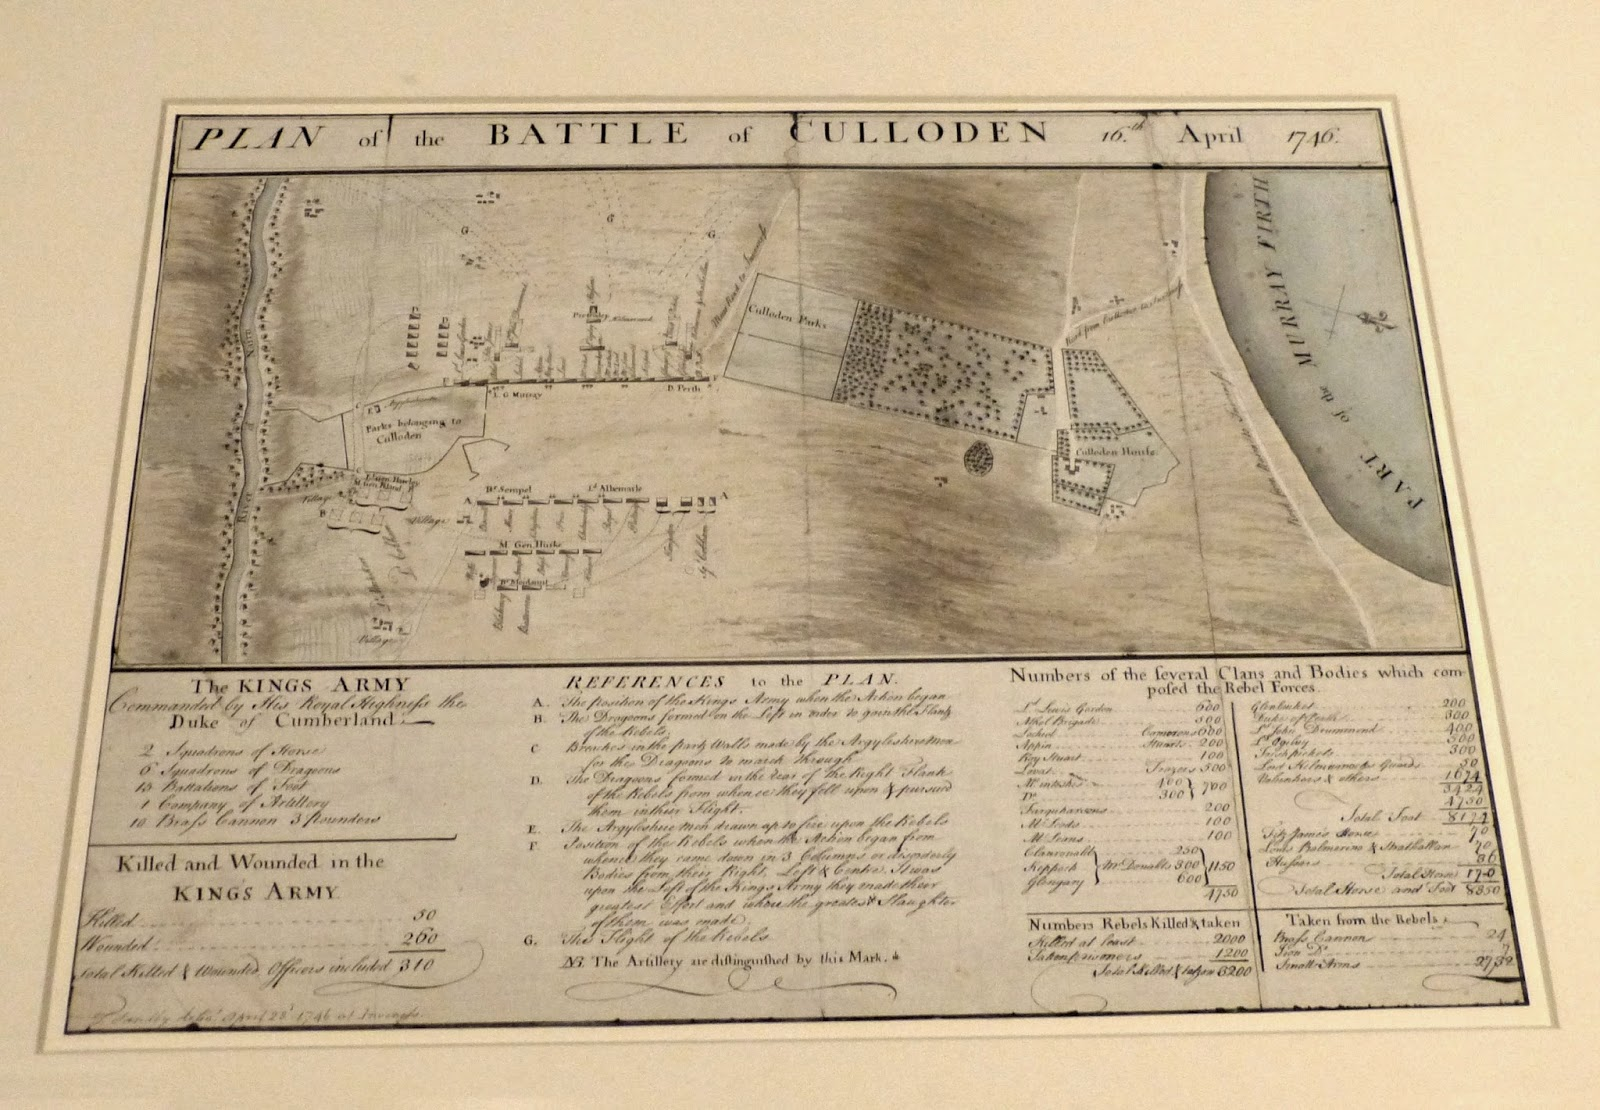 Plan of the Battle of Culloden  from the First Georgians exhibition at the Queen's Gallery, London